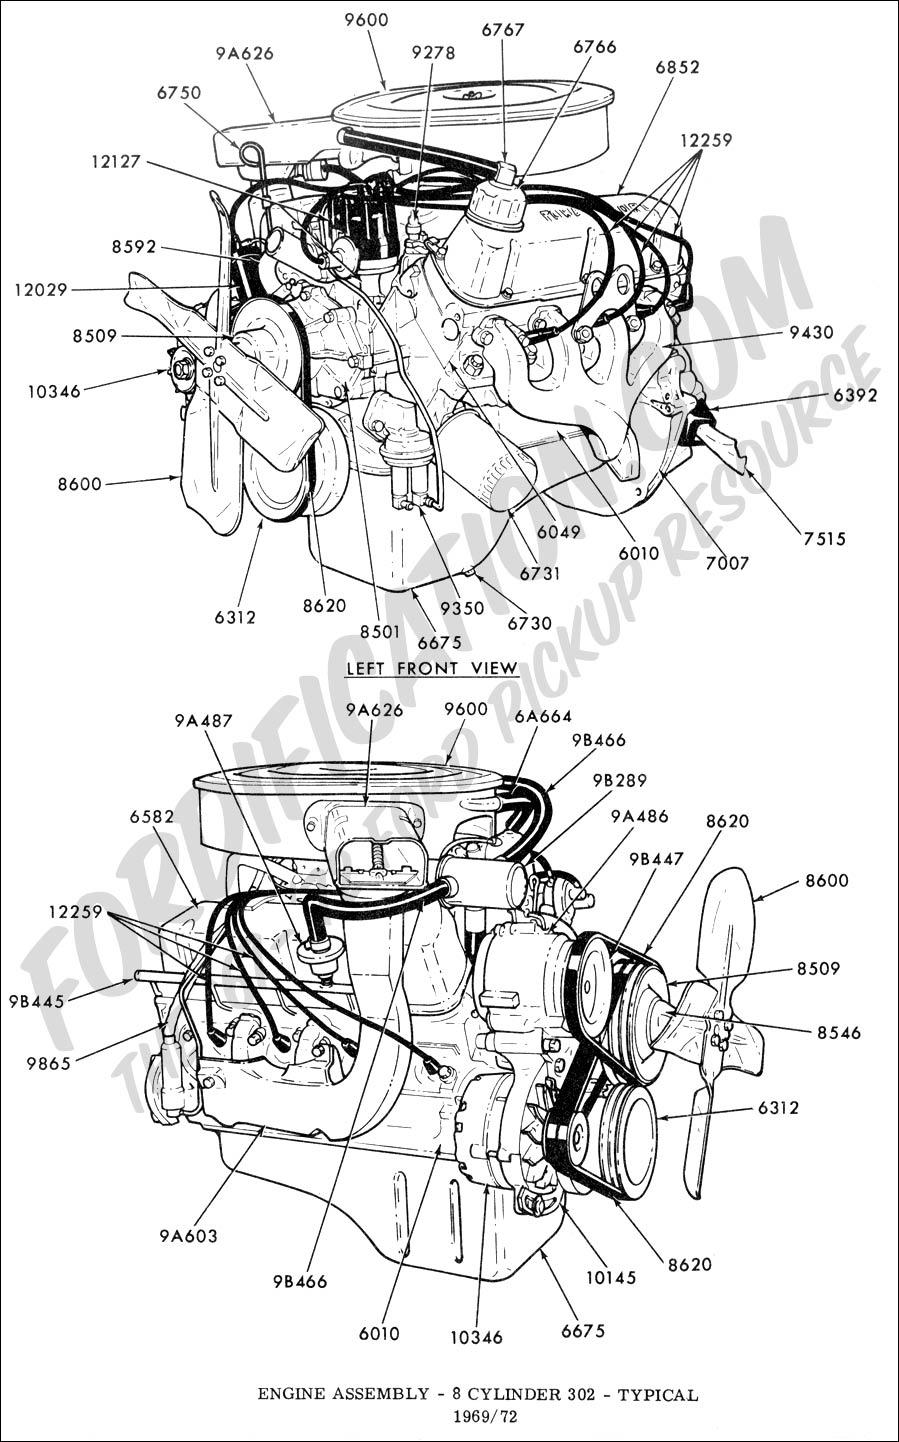 1965 mustang fuel filter location